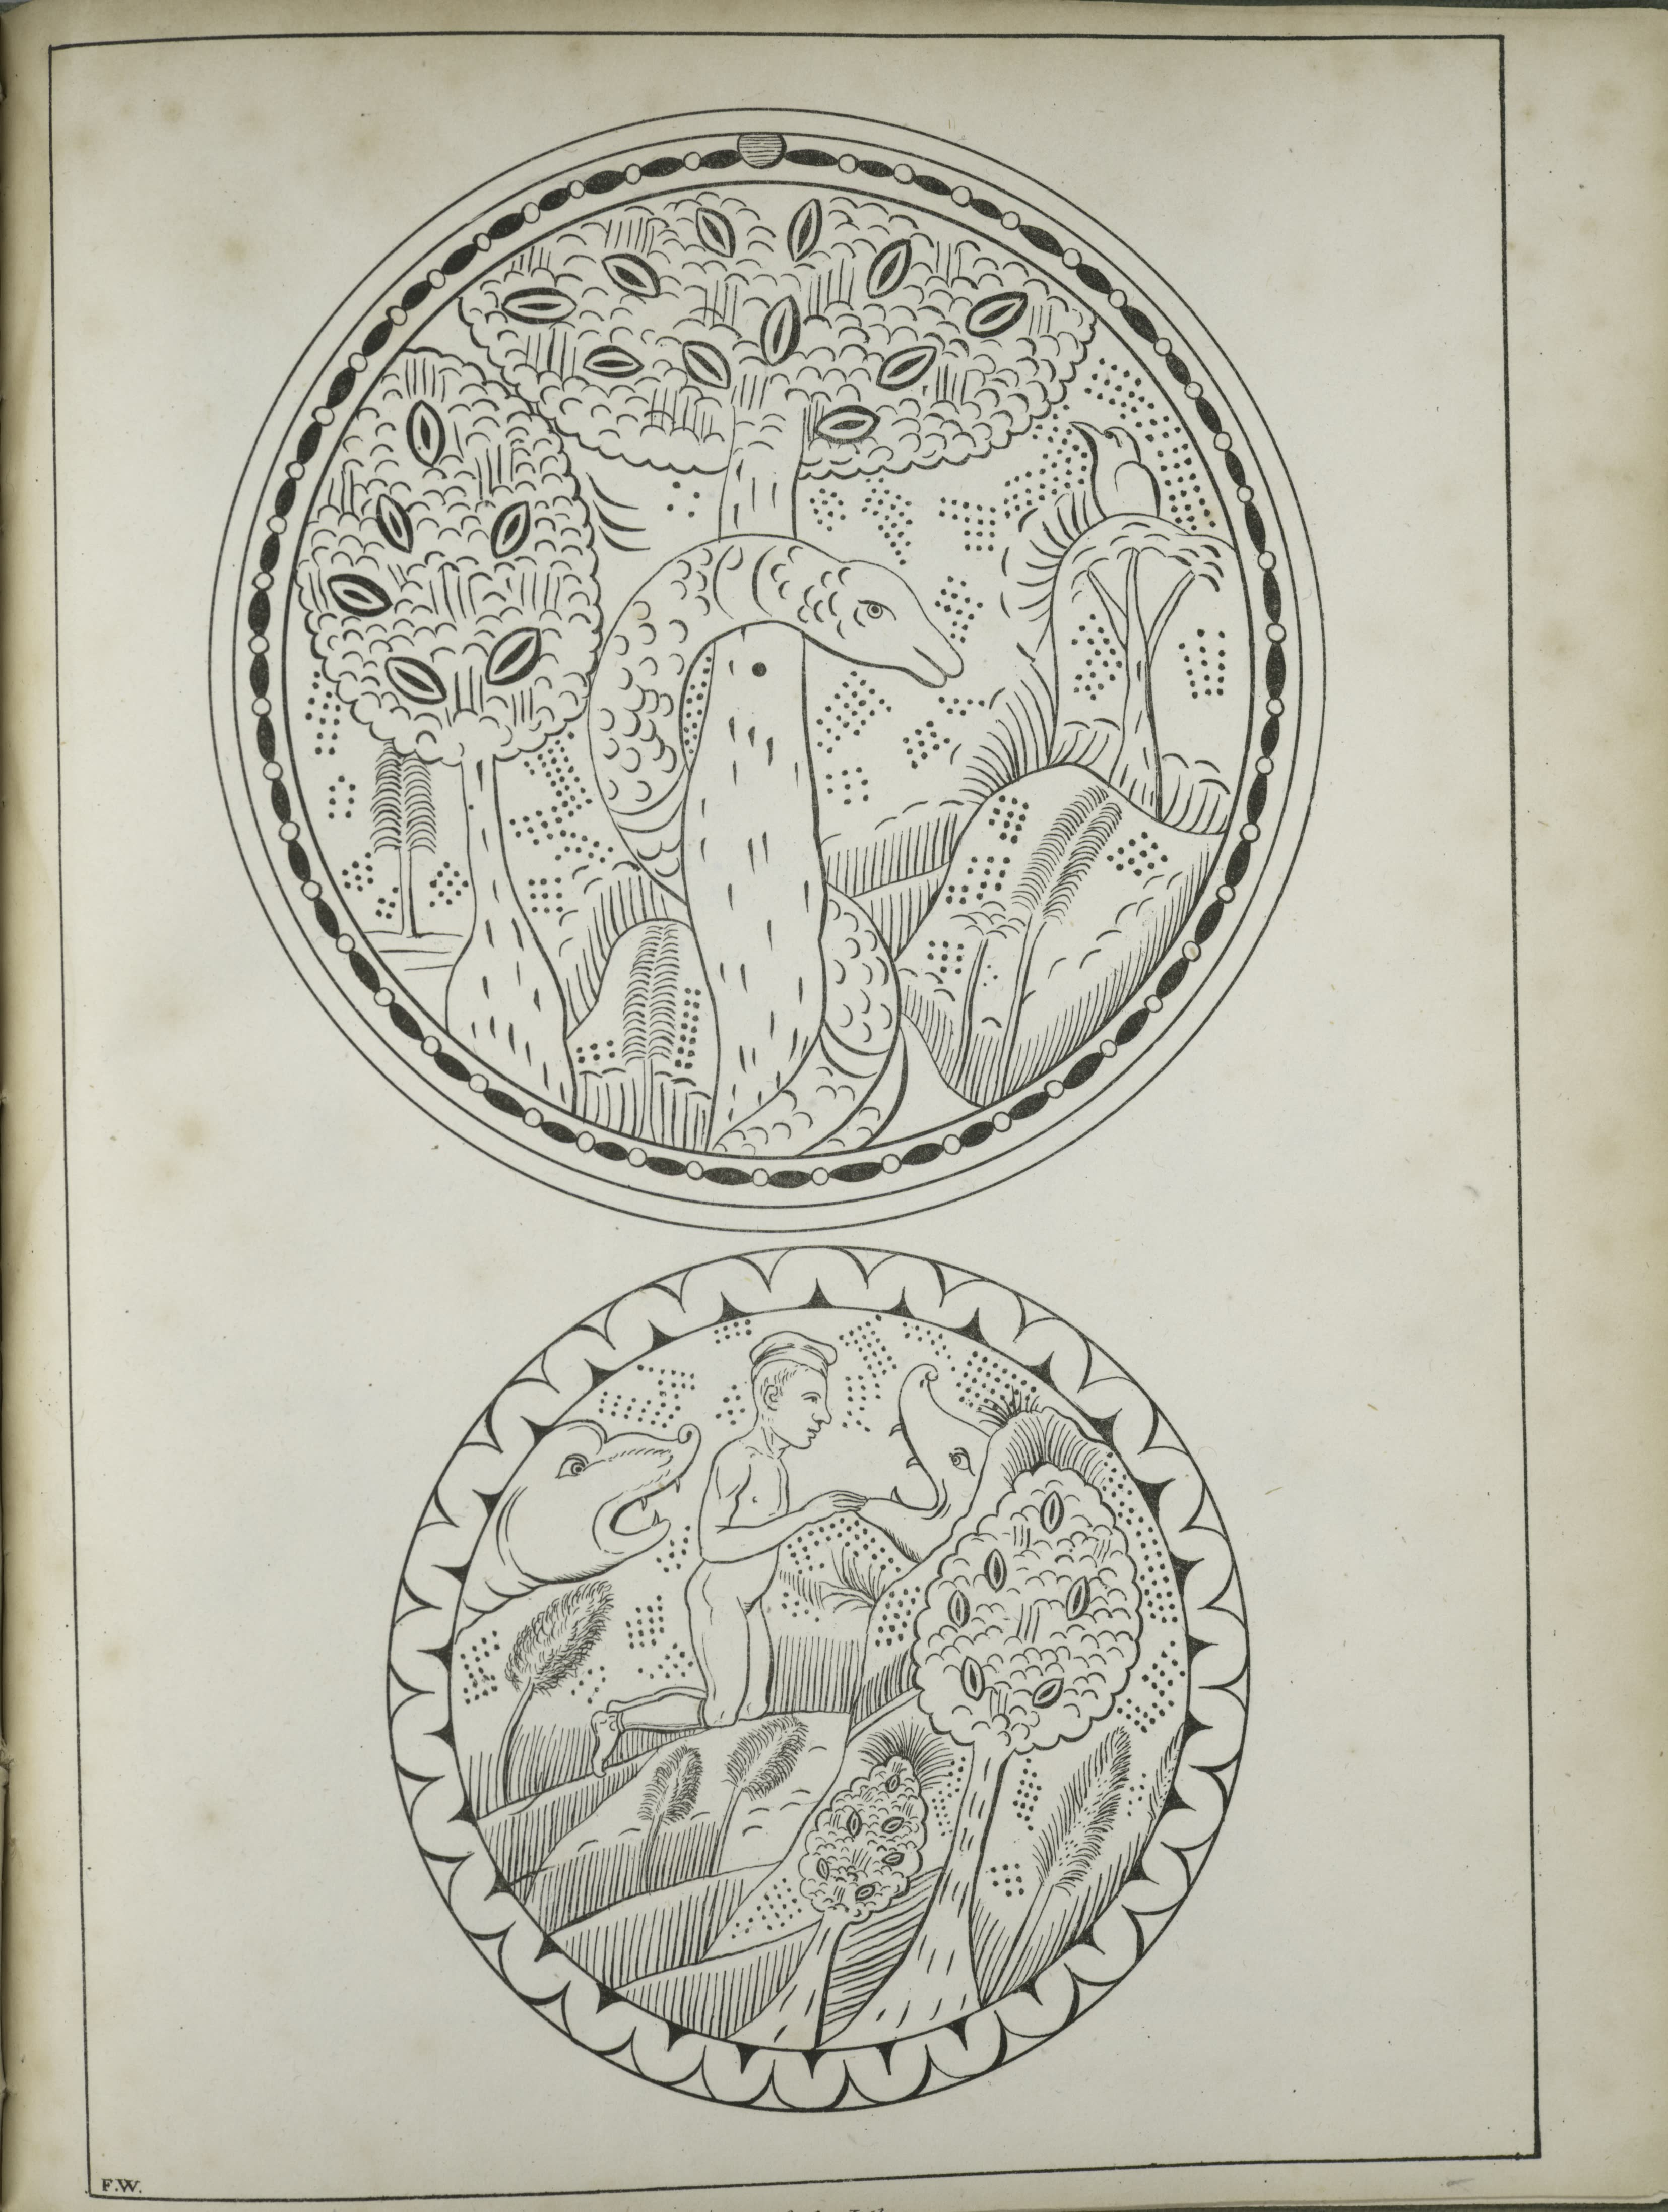 Description of the Ruins of an Ancient City - Two circular images, trees with a snake climbing one tree and a bird perched on another ; a human figure with two animal-like figures (1822)